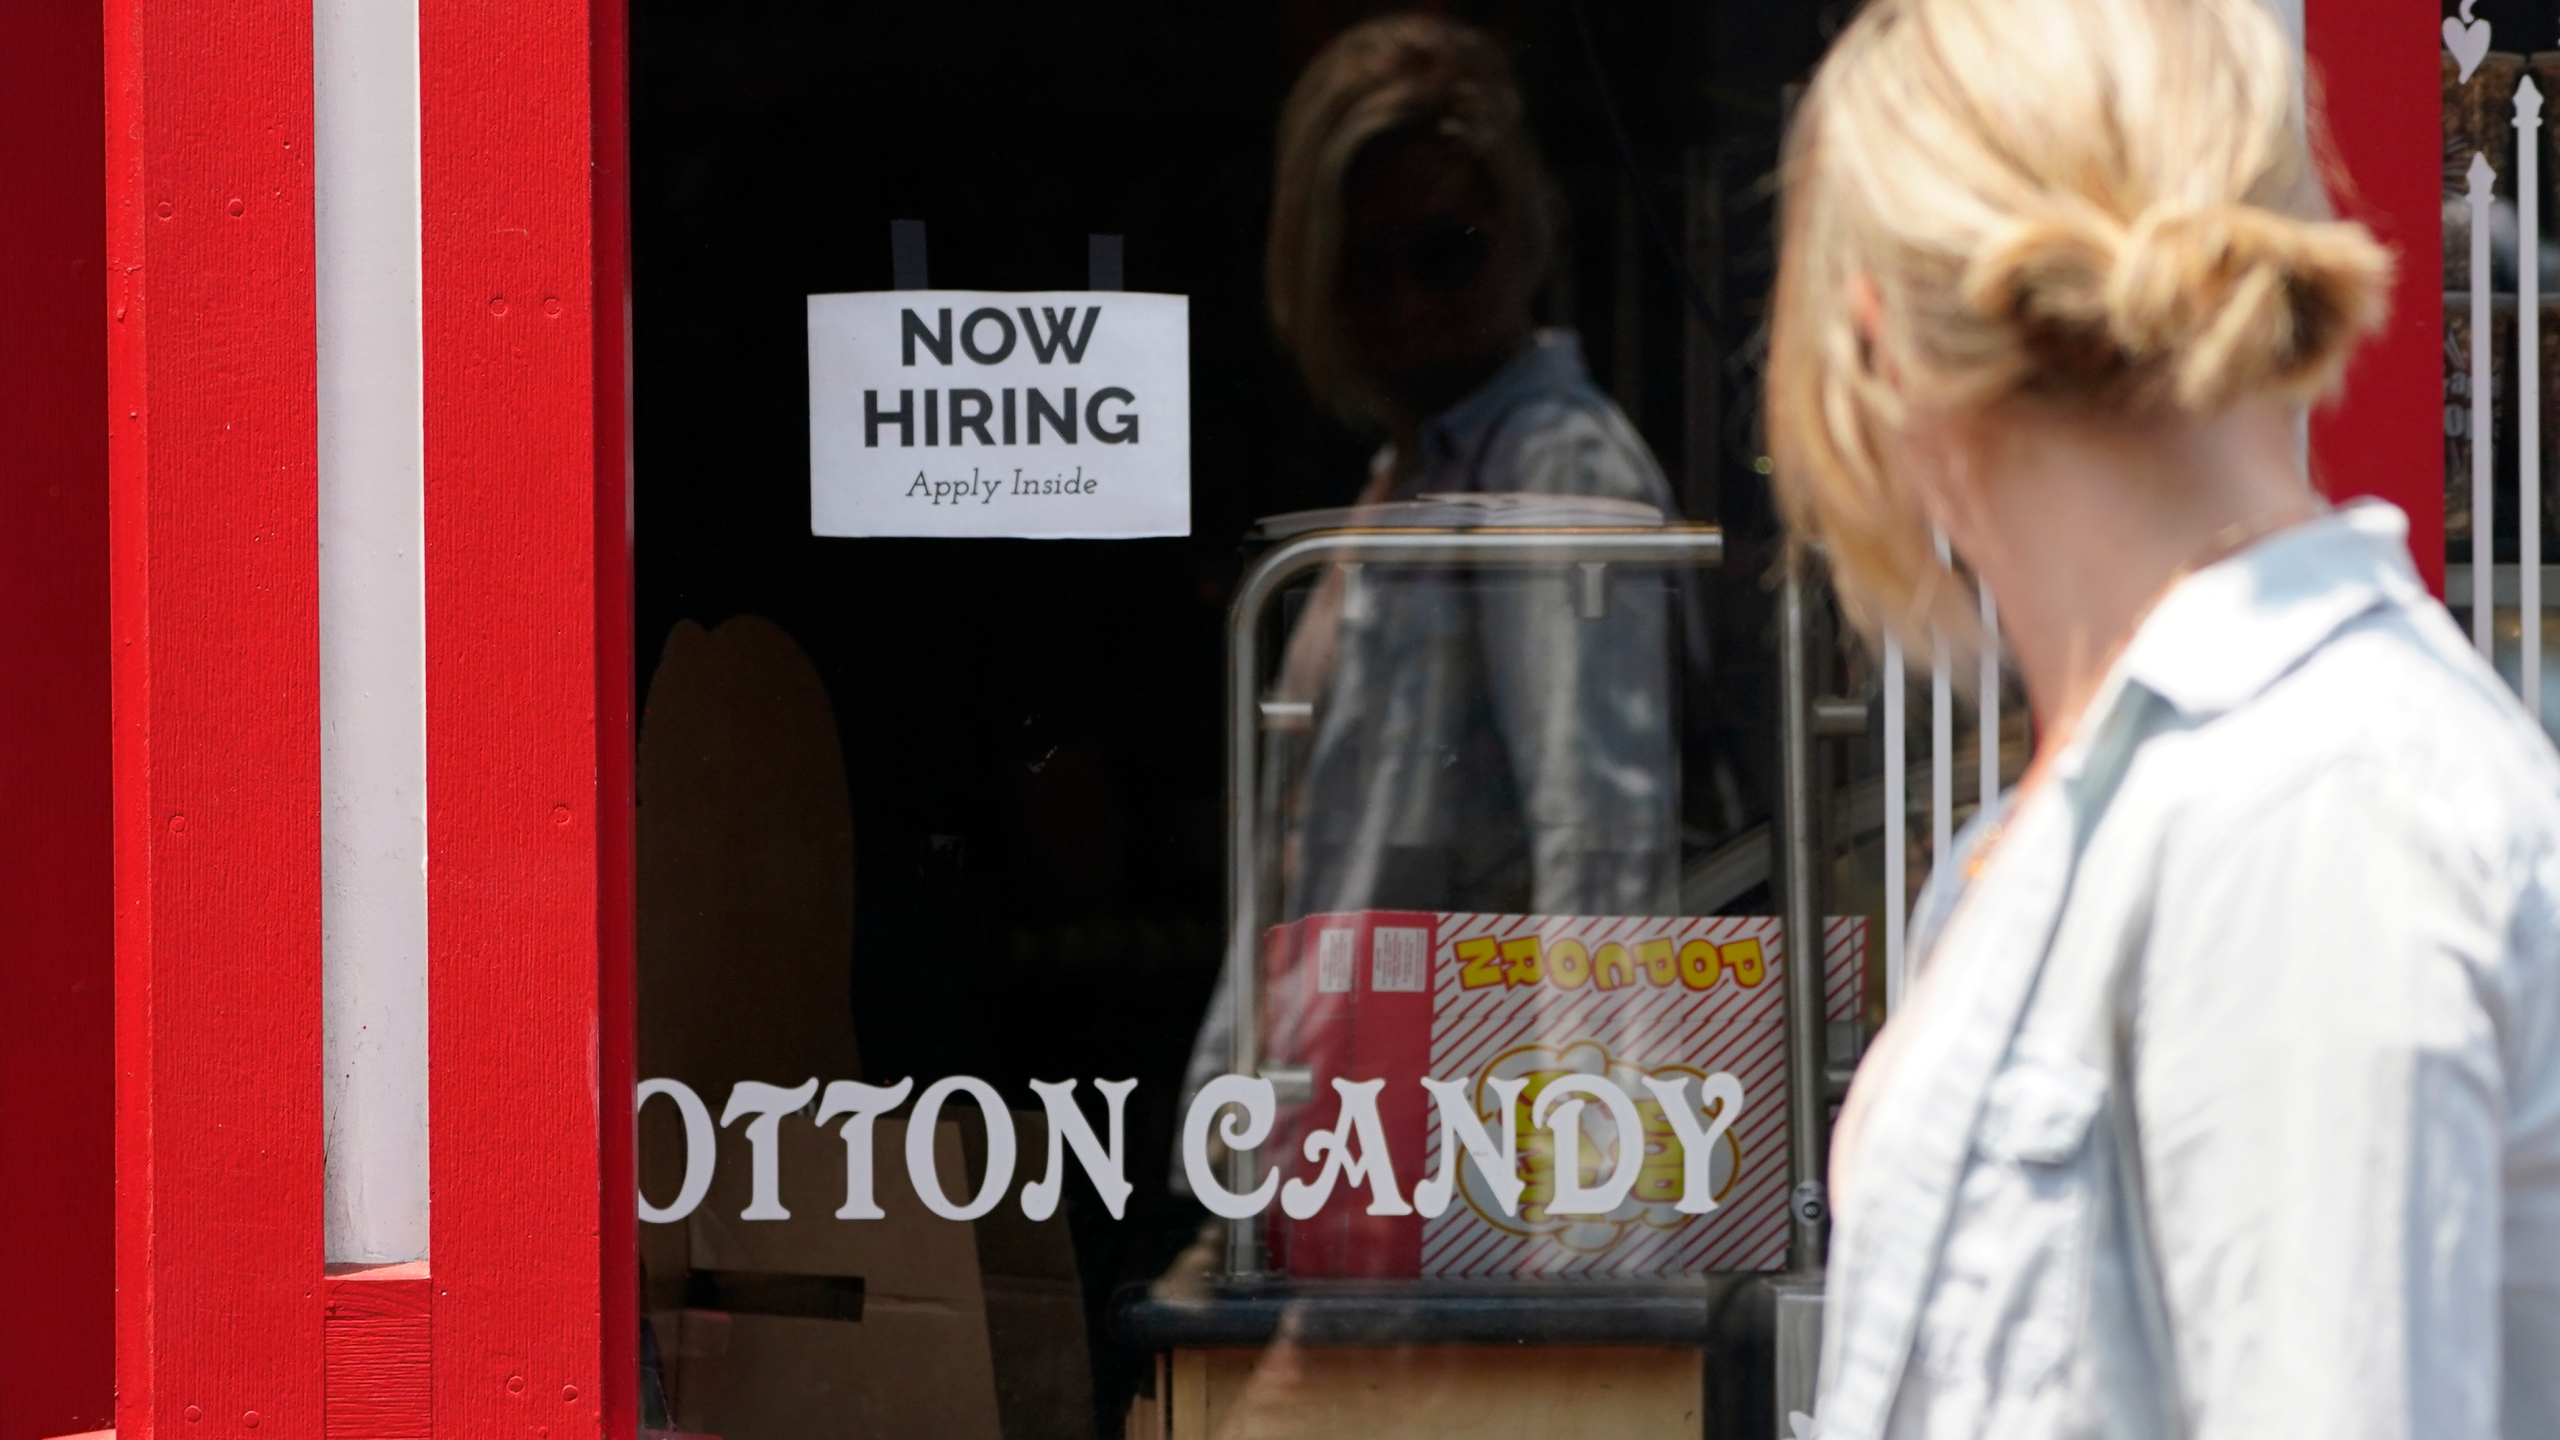 """A """"NOW HIRING"""" sign is posted in the window of The Wharf Chocolate Factory at Fisherman's Wharf in Monterey on Aug. 6, 2021. (Rich Pedroncelli / Associated Press)"""